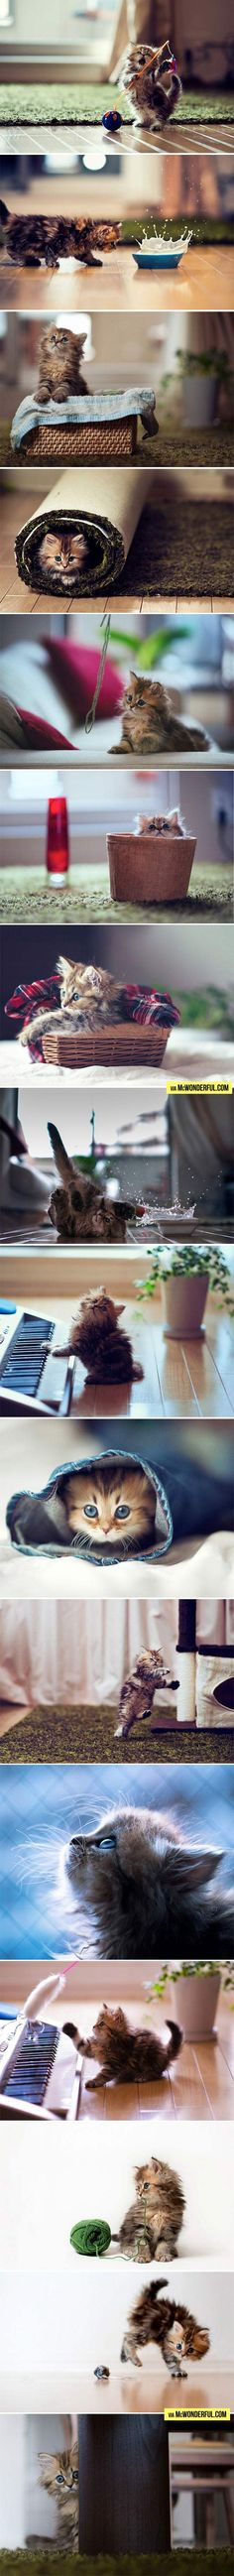 Is this the #cutest #kitten ever!! #cute #fofo #cat #gato